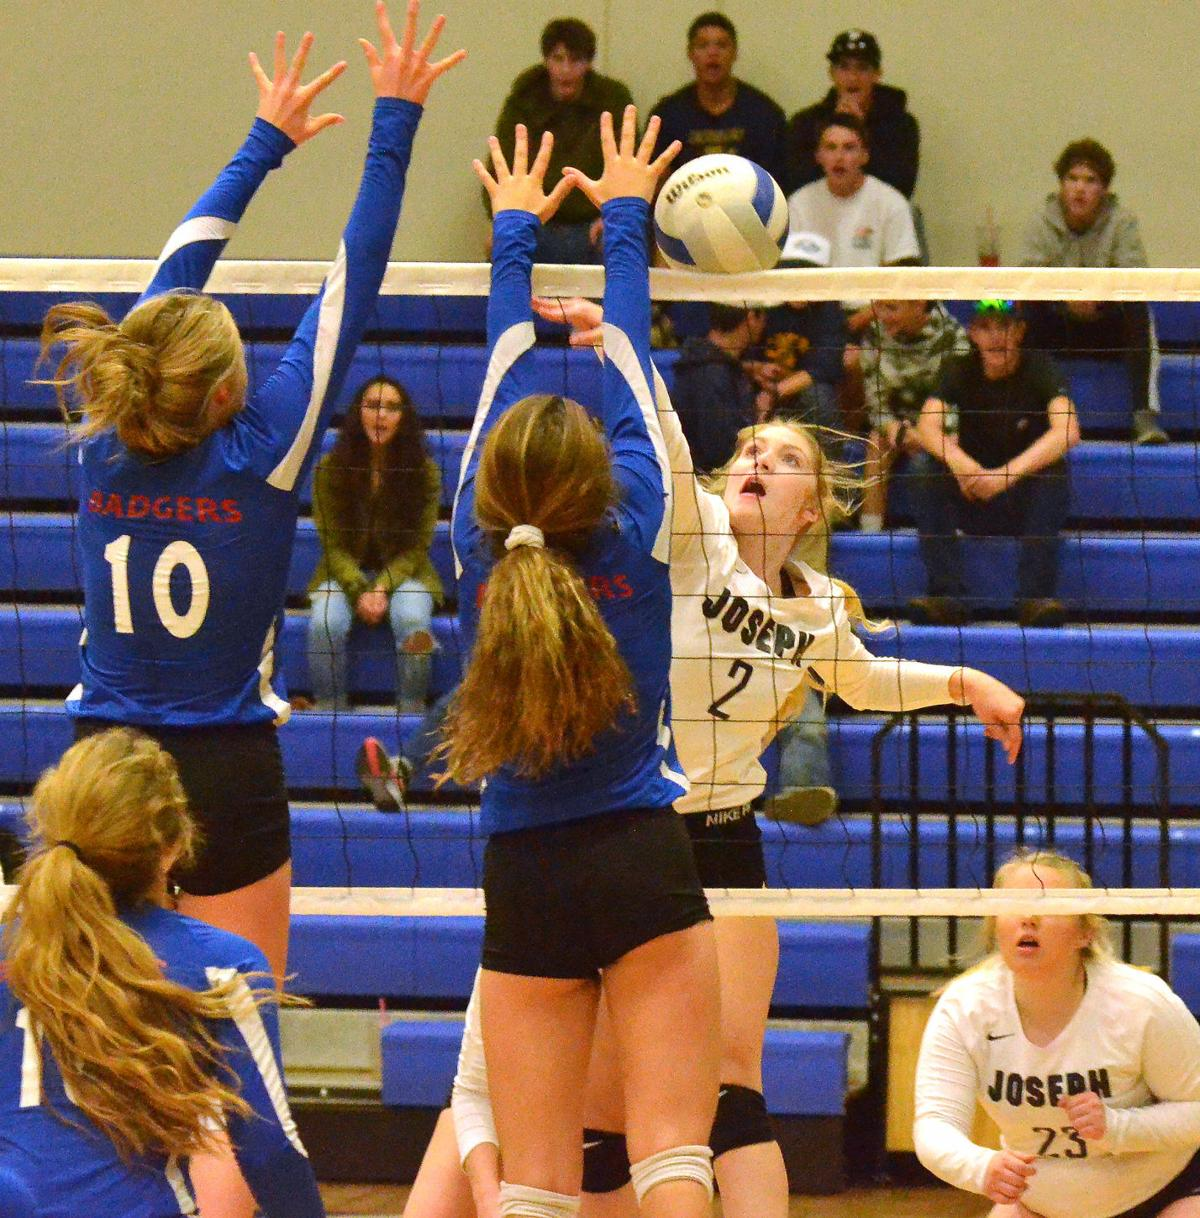 Joseph volleyball team finishes second in league